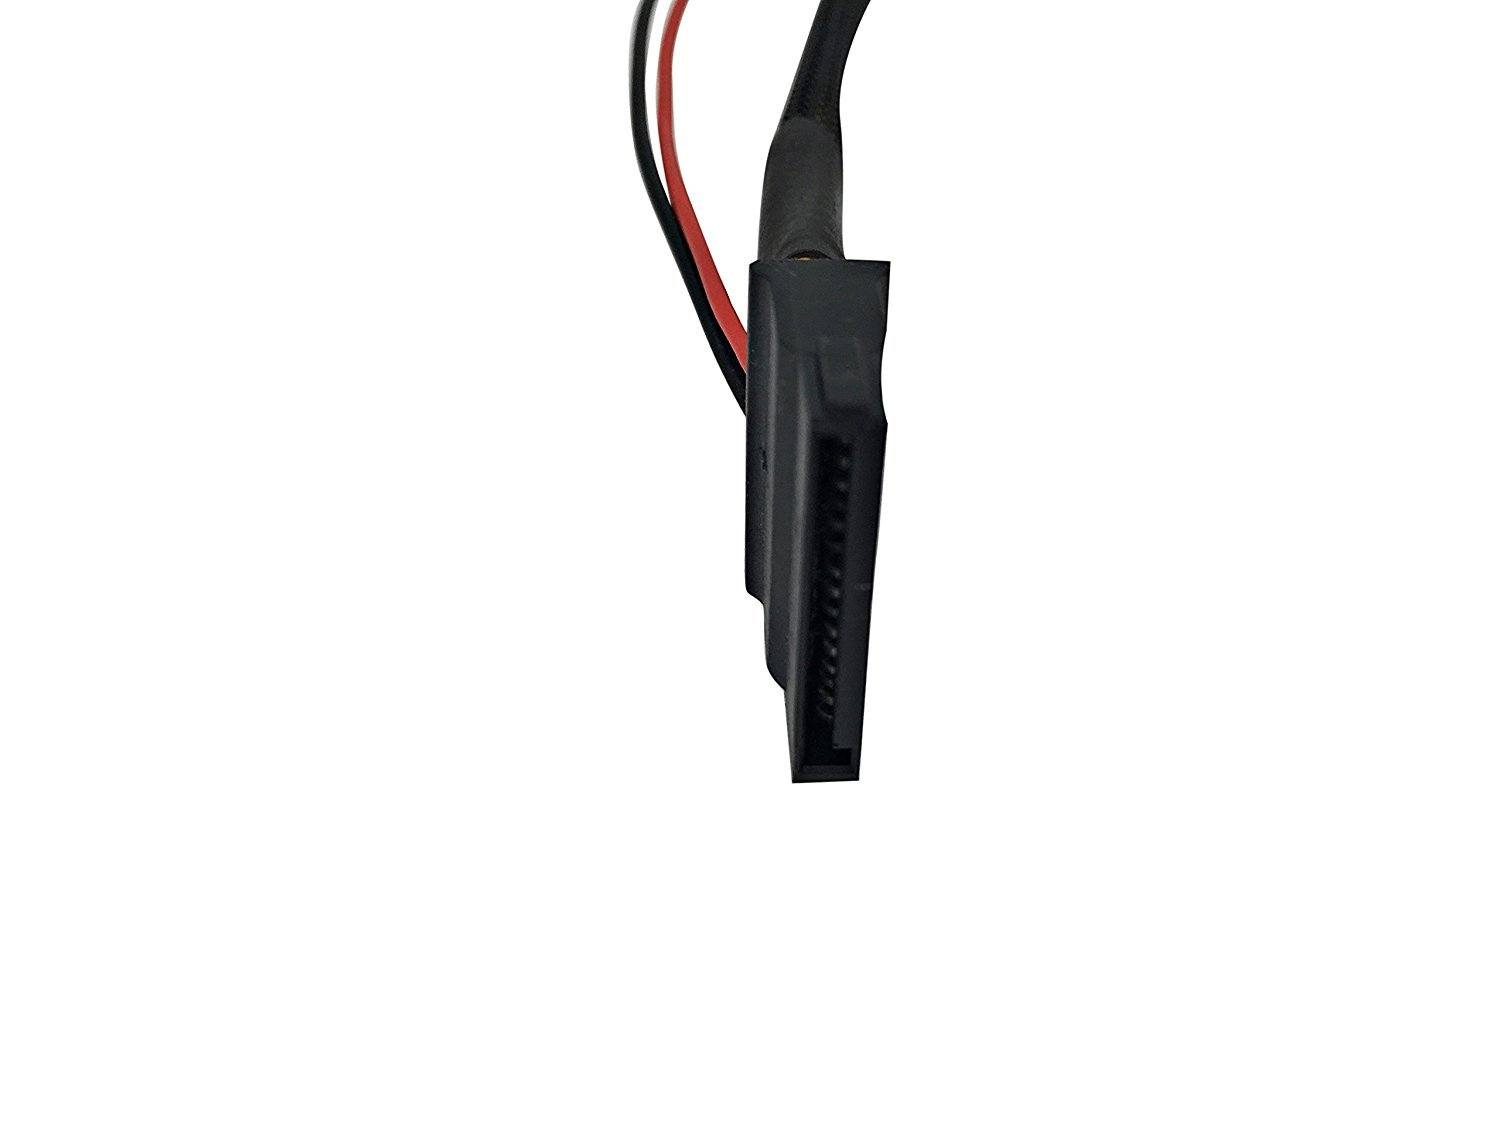 Eyeboot SATA 15P + 6P to 6-Pin Power Supply Cable for SSD hard disk CD-ROM by Eyeboot (Image #2)